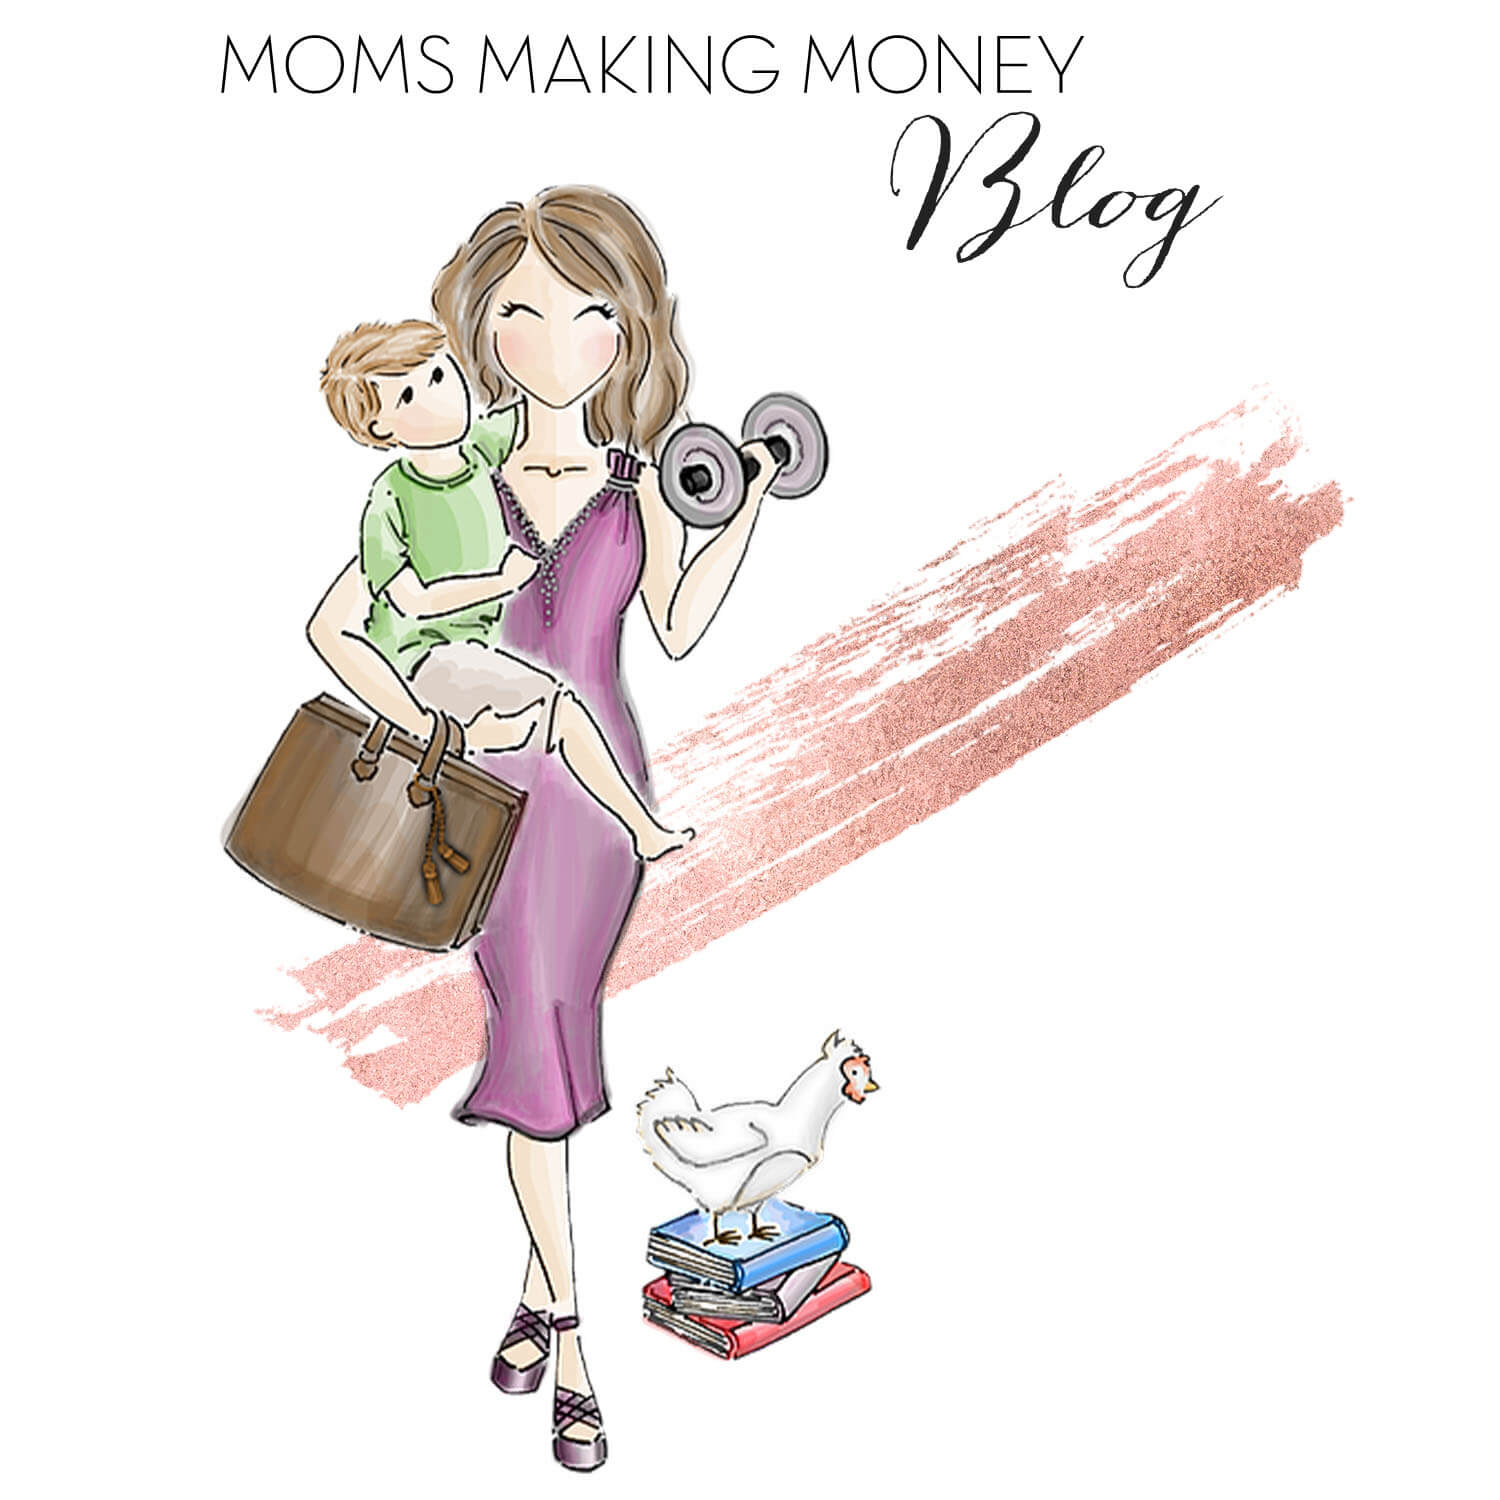 The Moms Making Money Blog